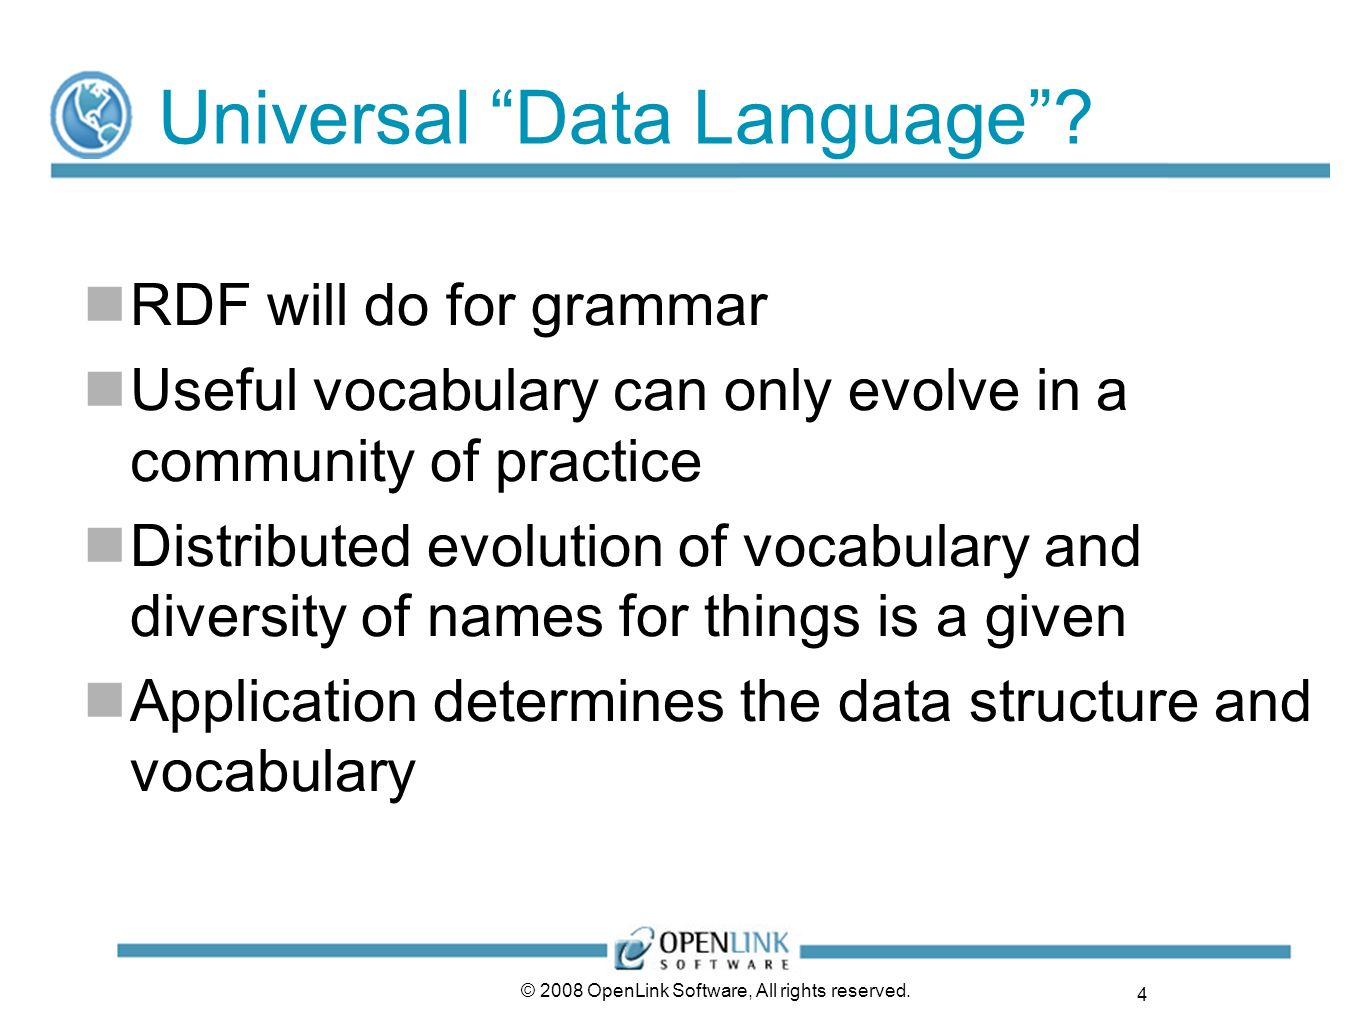 4 © 2008 OpenLink Software, All rights reserved. Universal Data Language? RDF will do for grammar Useful vocabulary can only evolve in a community of